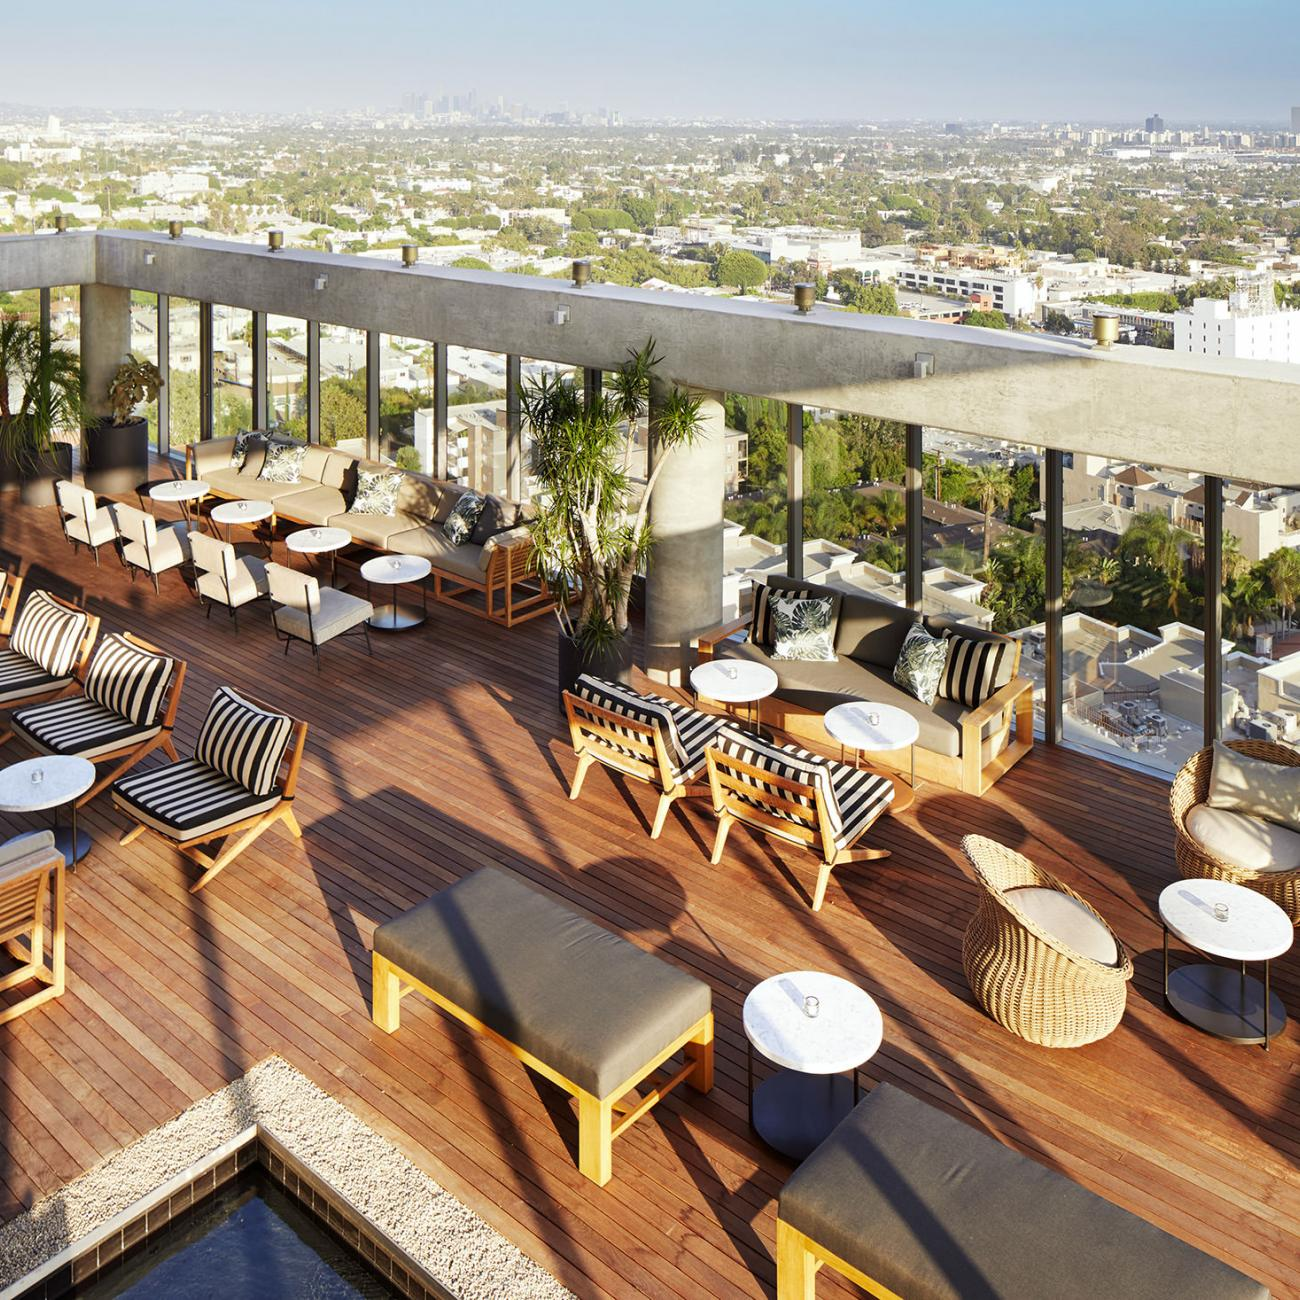 The Jeremy Hotel's rooftop deck with a view of West Hollywood